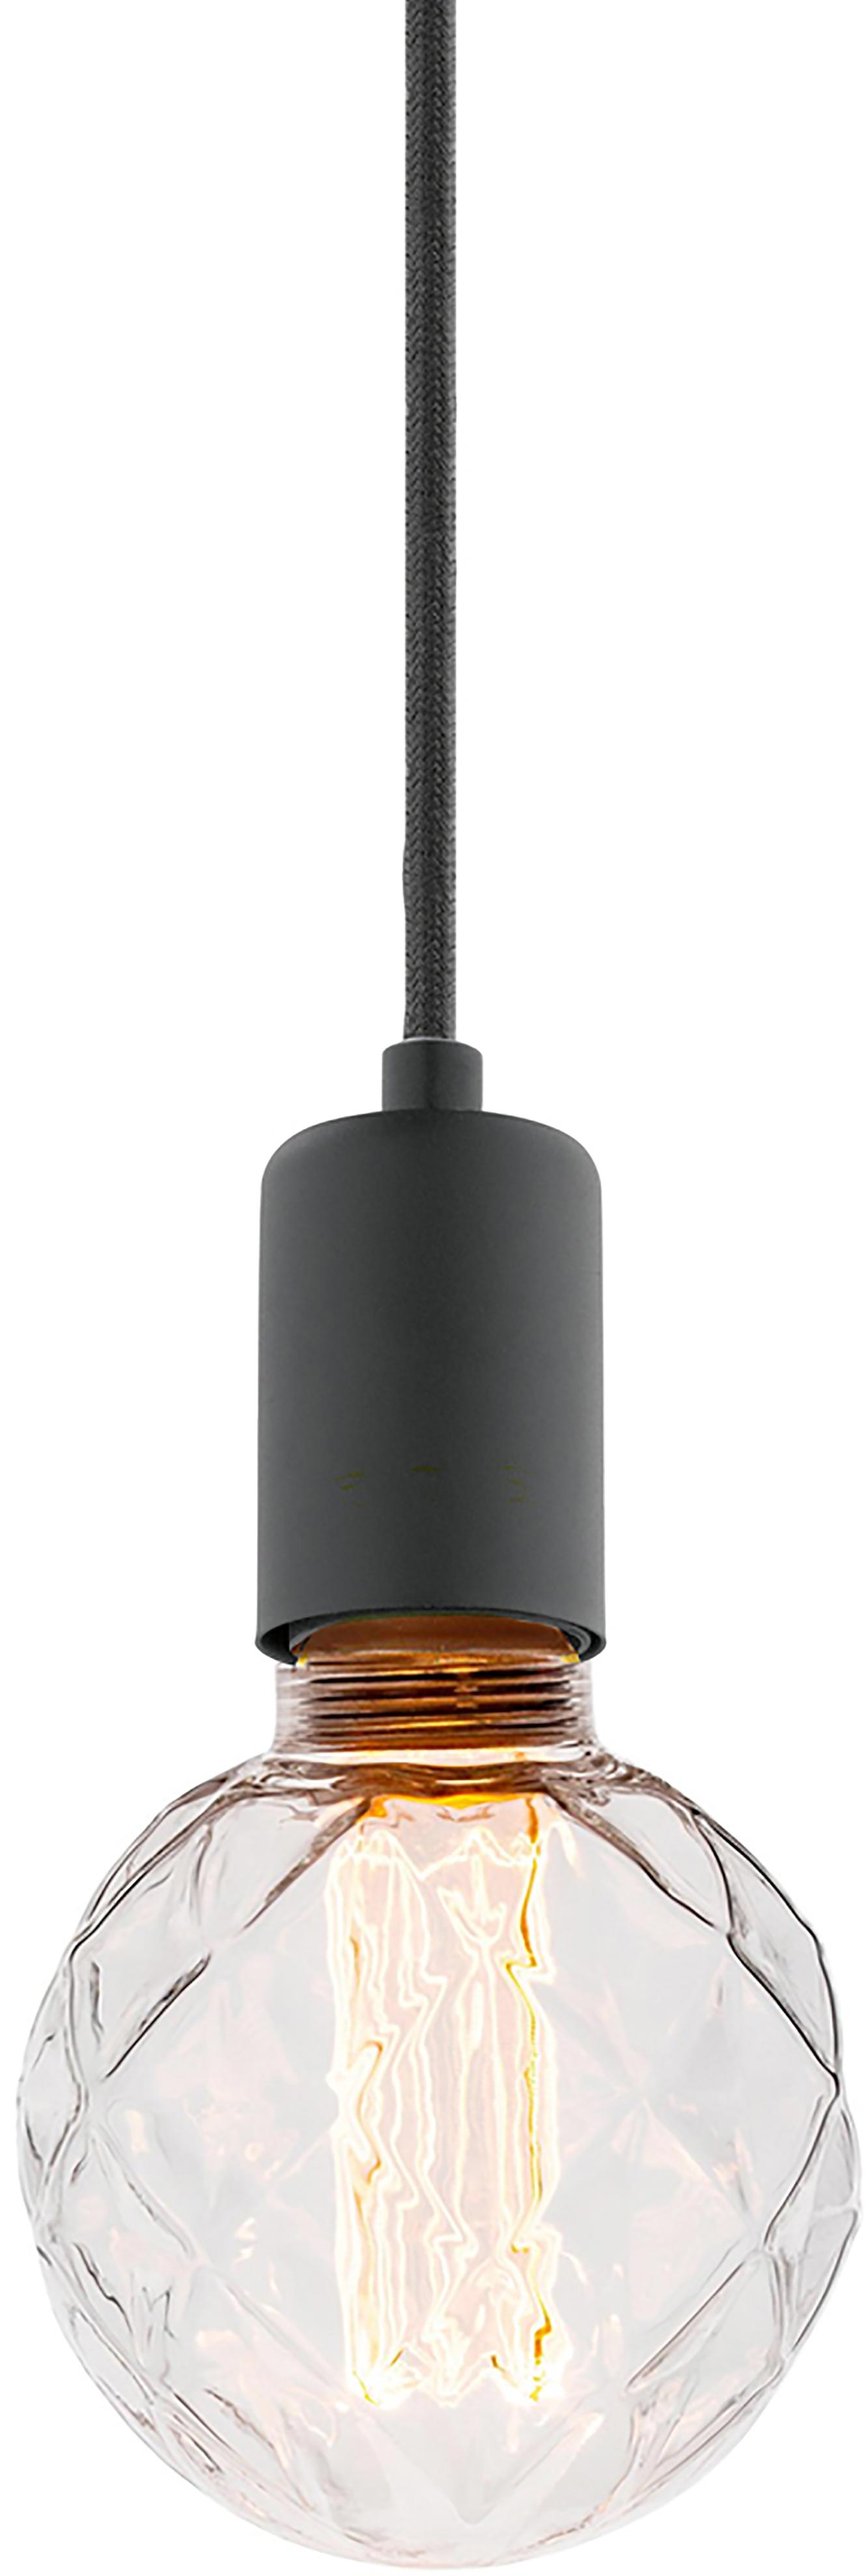 Suspension ampoule nue Trey, Noir, mat